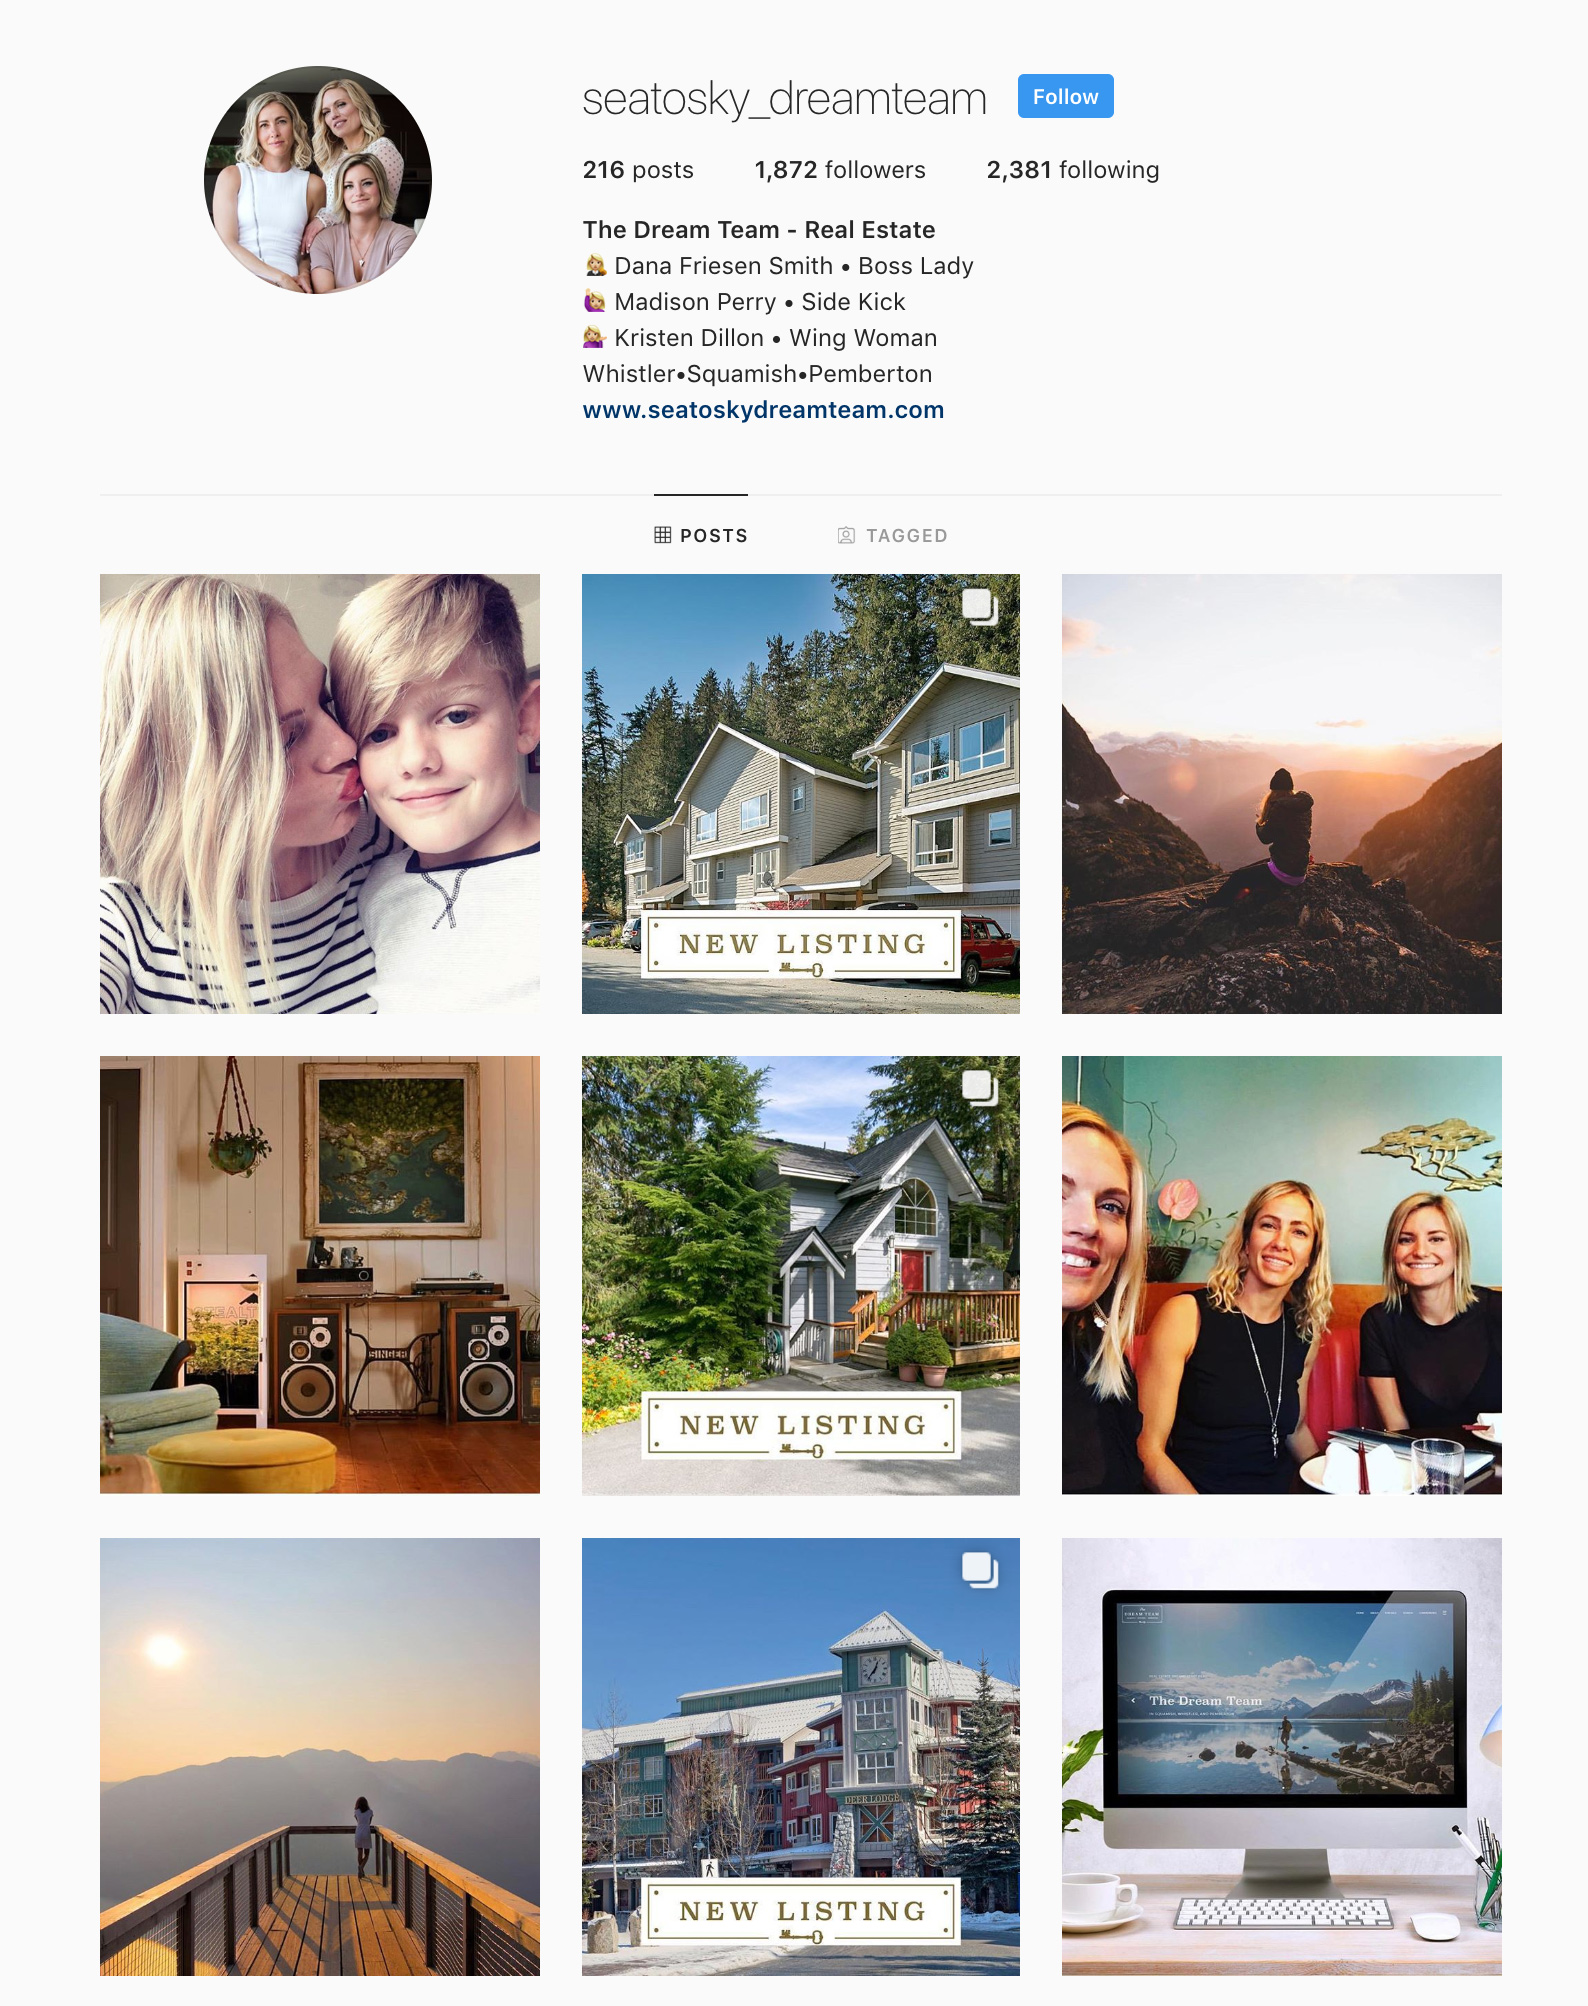 The Sea to Sky Dream Team's Awesome Instagram Feed